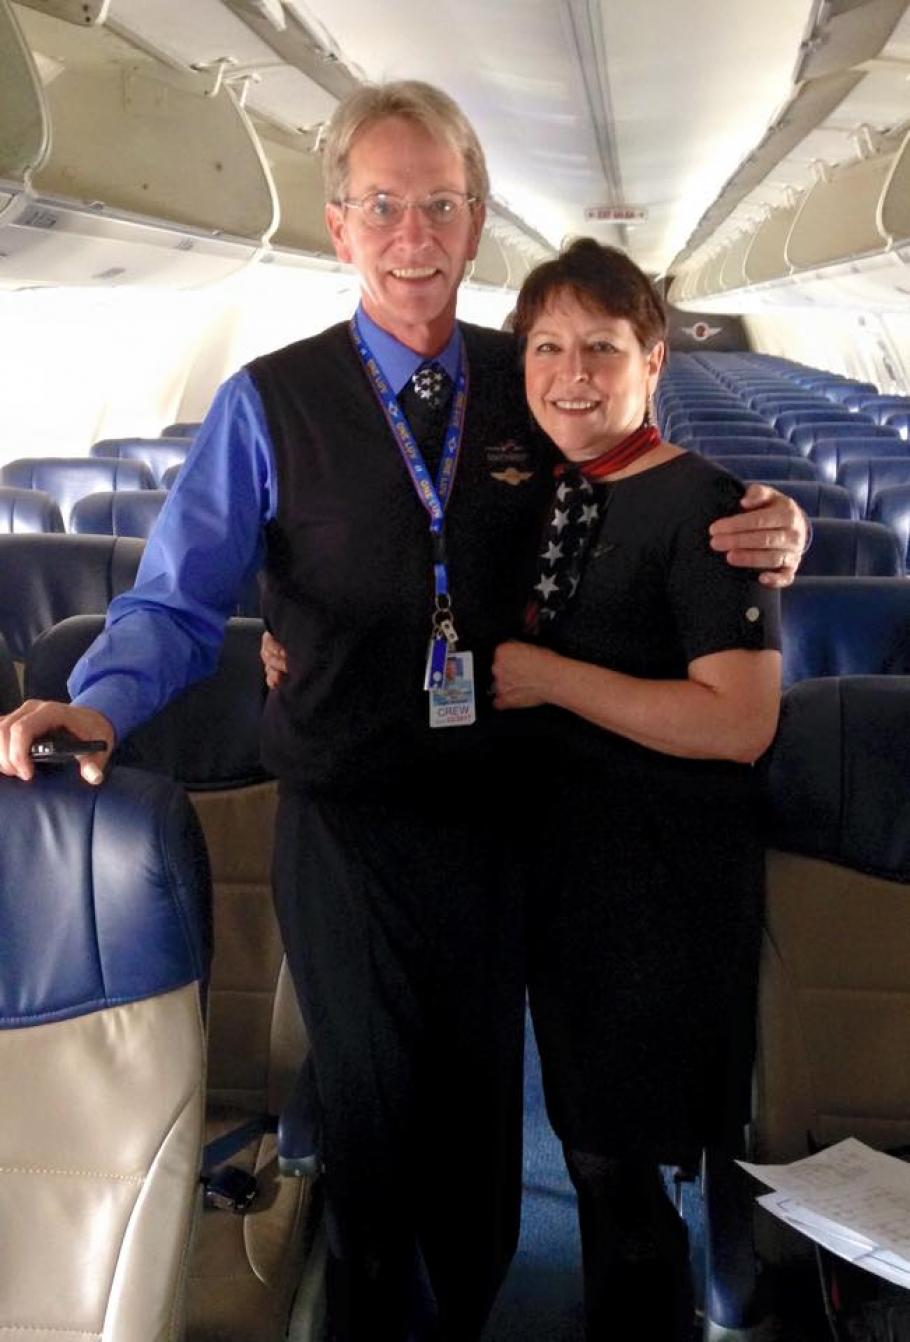 Cindy and George on his first flight as a Southwest Flight attendant.